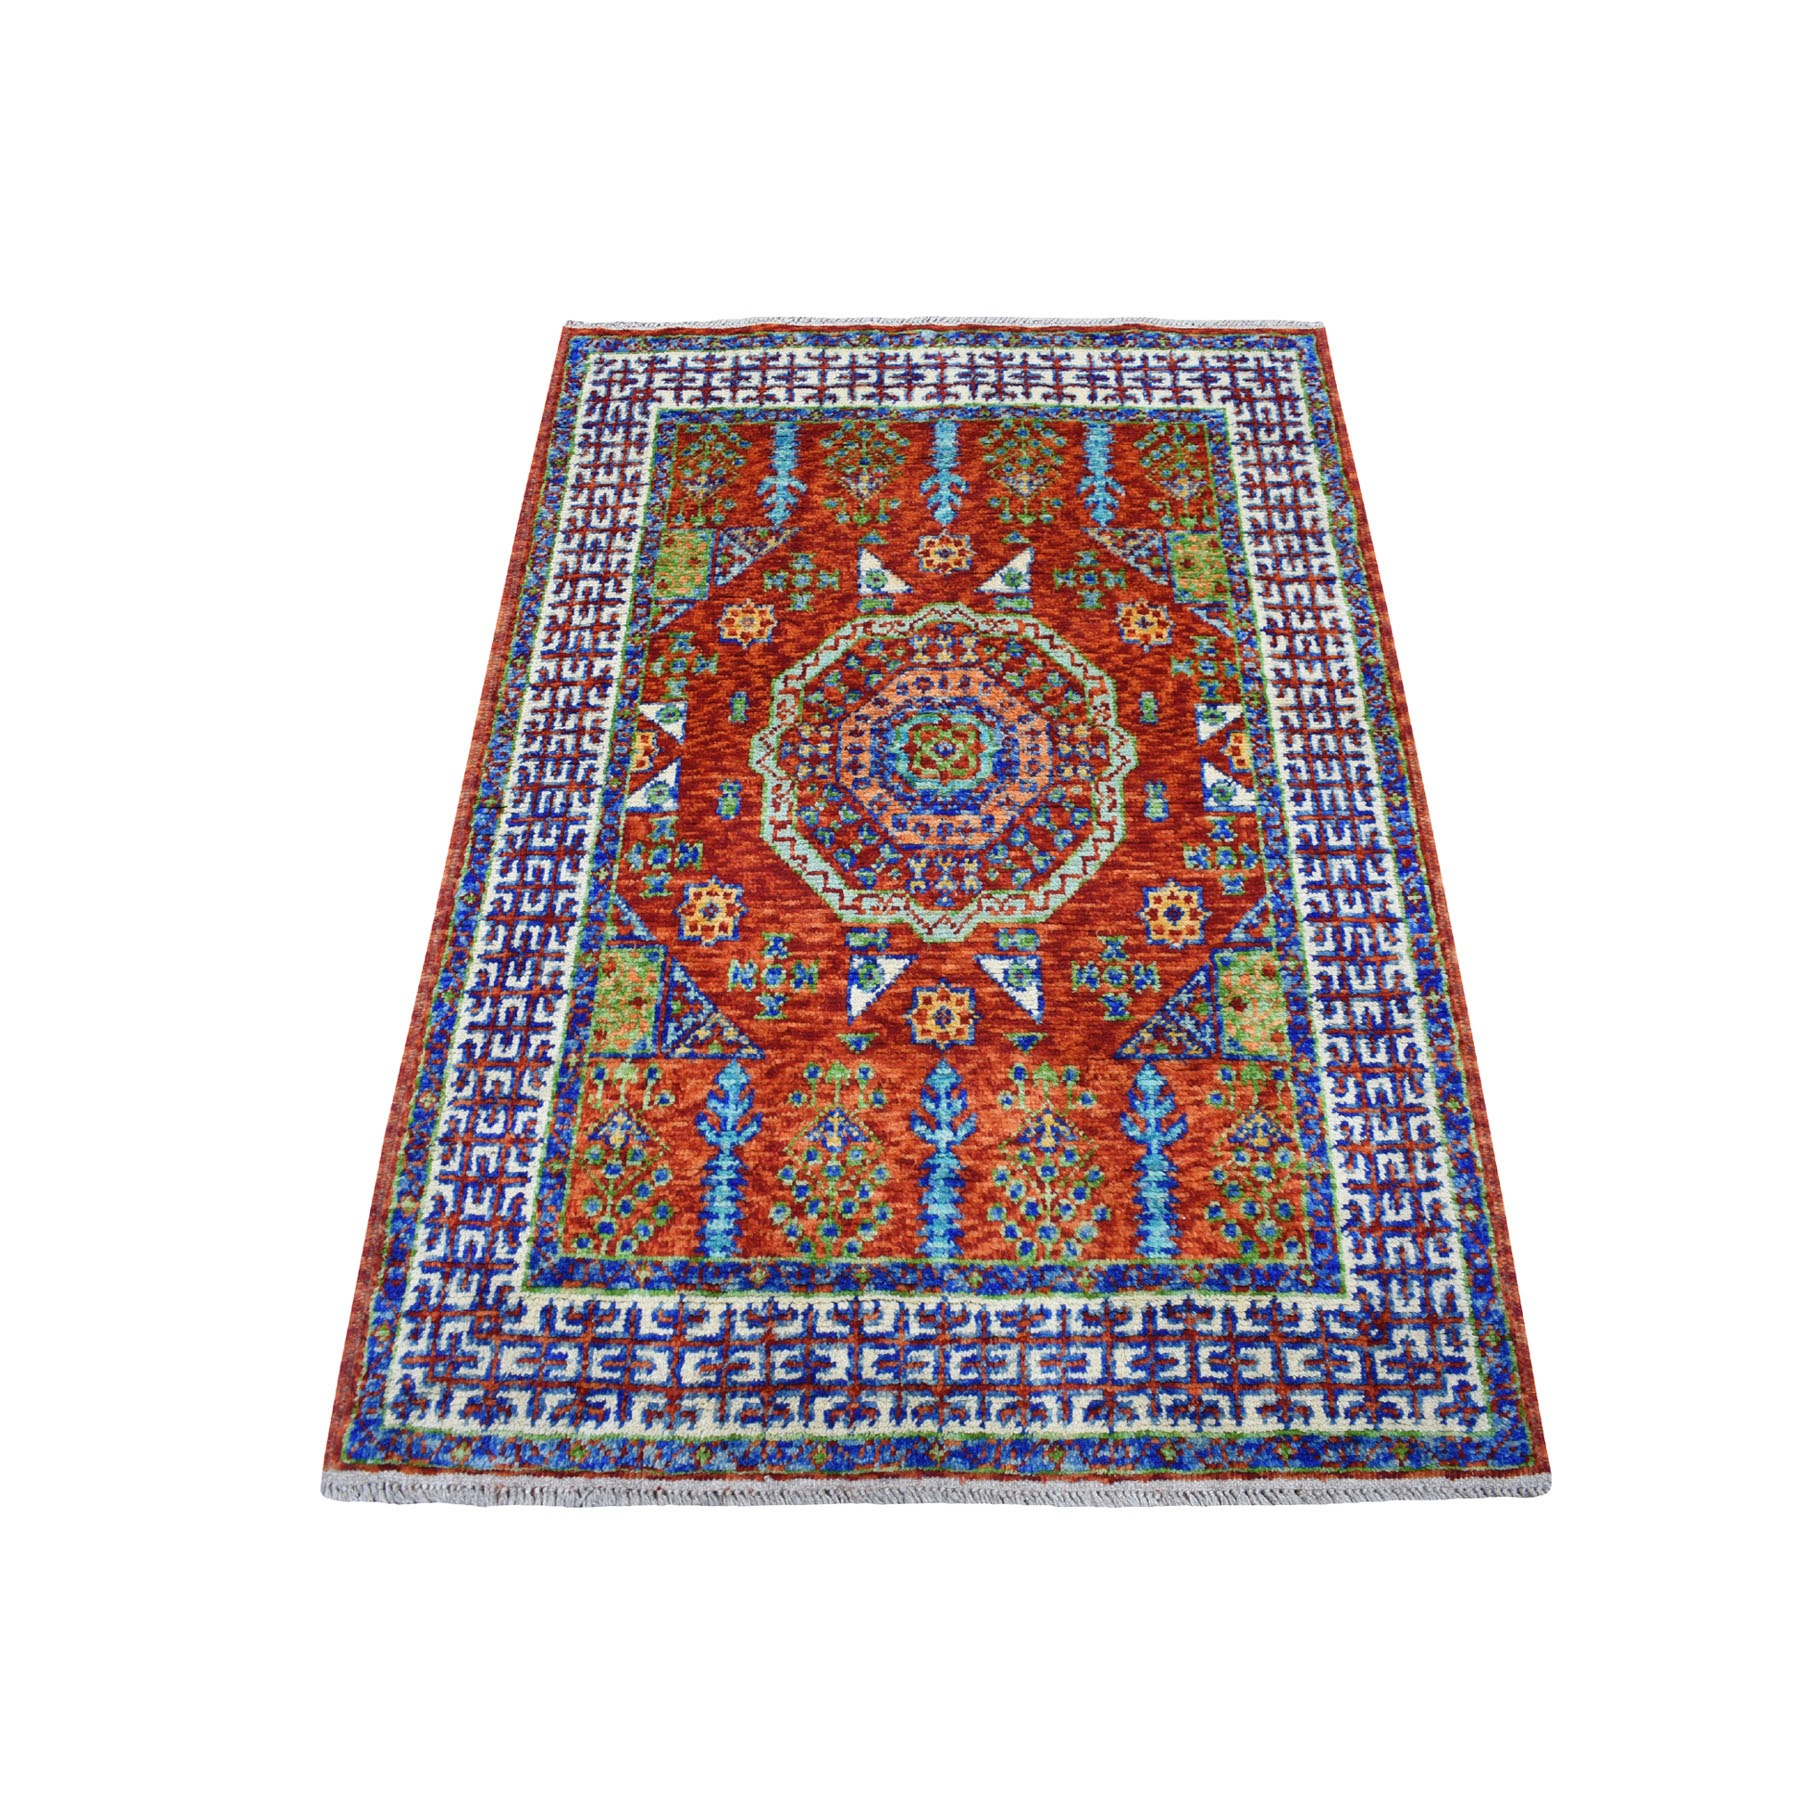 "3'6""x4'9"" Orange Mamluk Design Colorful Afghan Baluch Hand Knotted 100% Wool Oriental Rug"